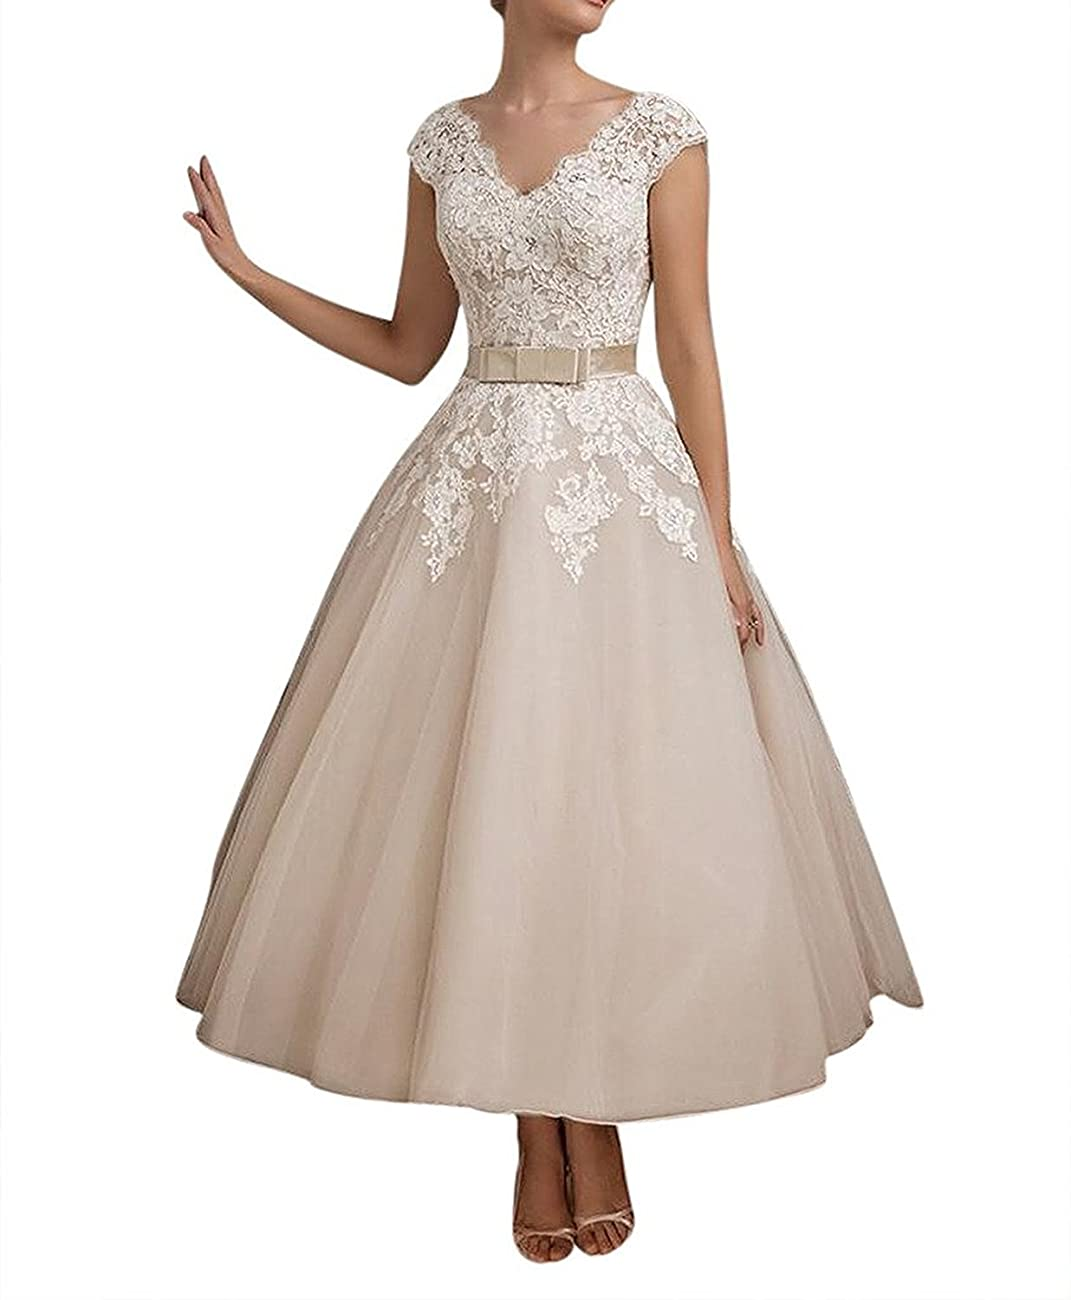 FNKS Women's 1950s Vintage Tea Length Wedding Dresses Lace Prom Dress 0